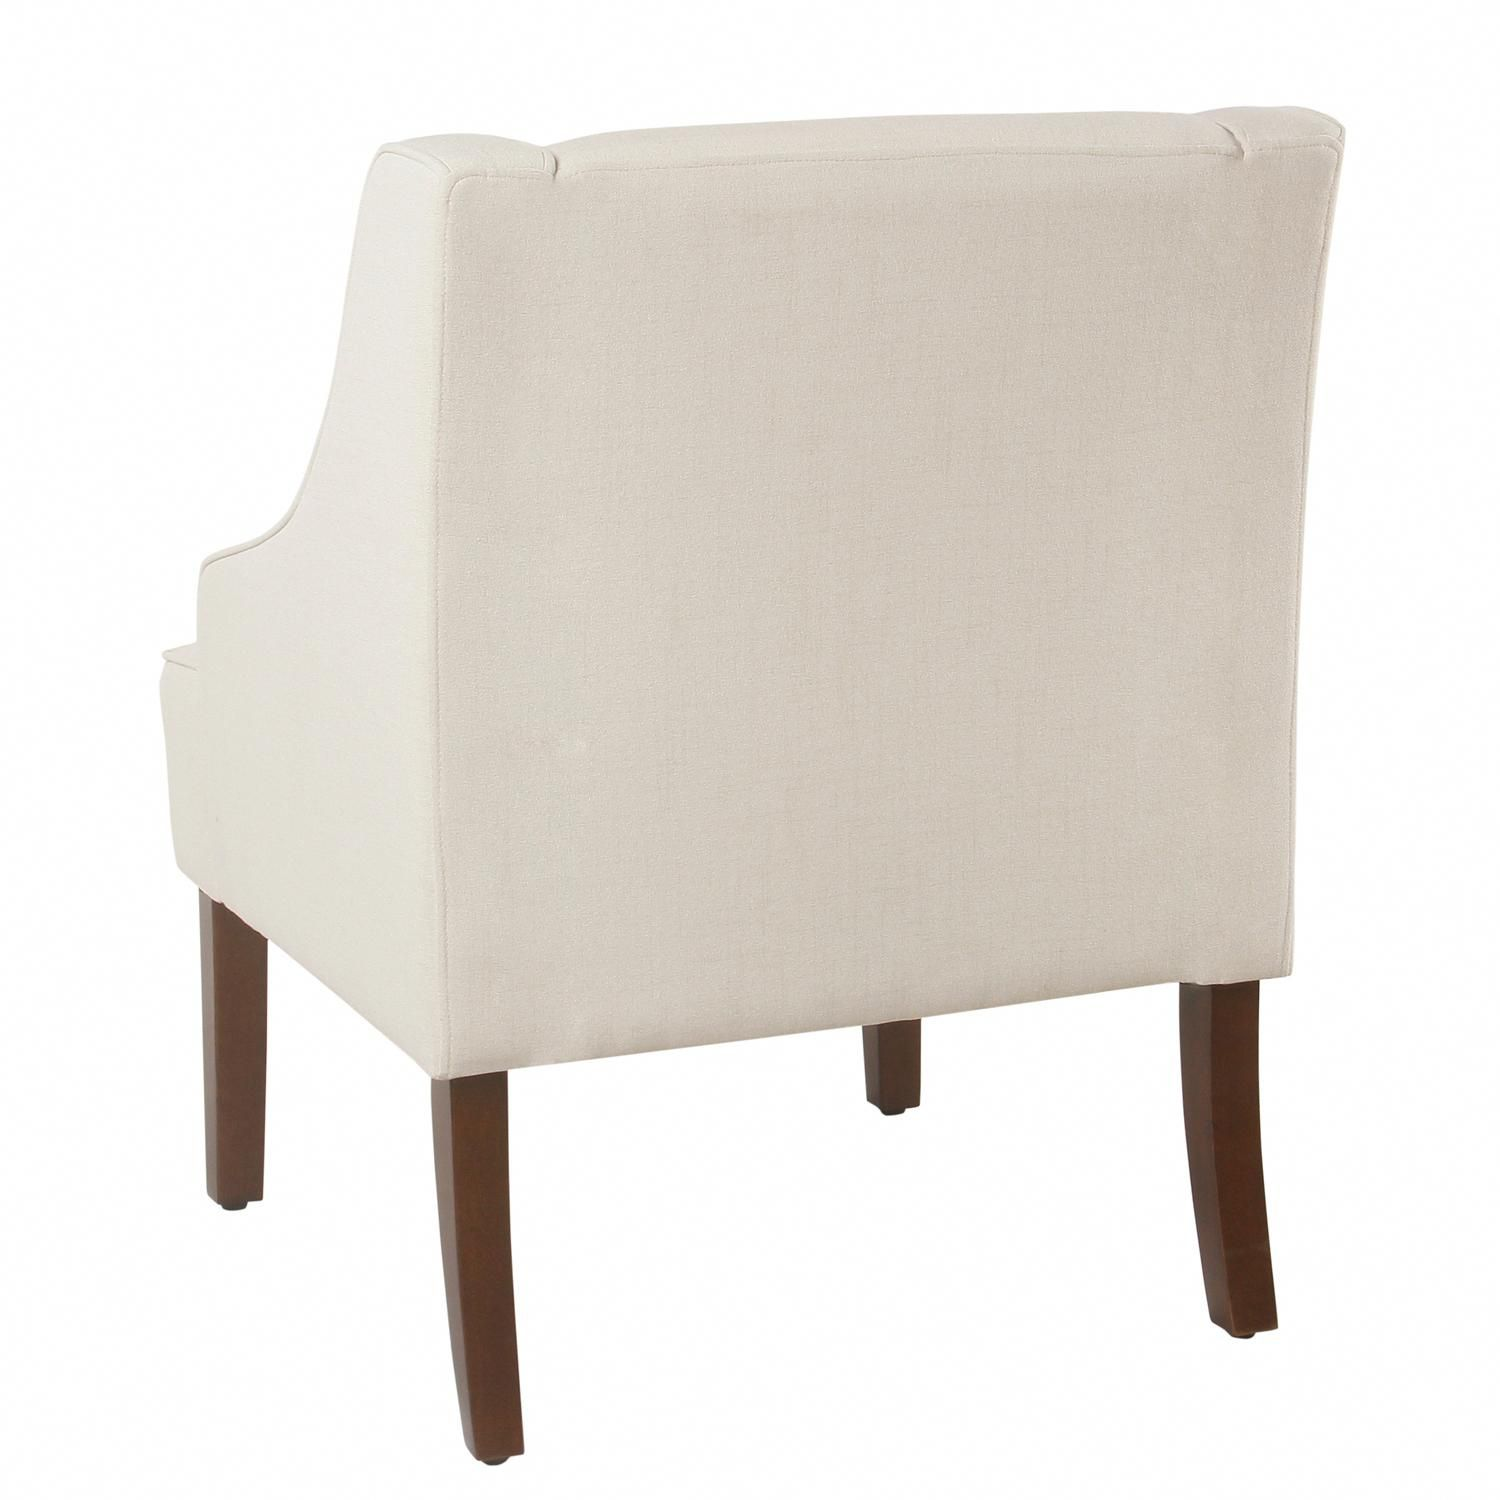 3e83321498b4 Classic Swoop Arm Accent Chair In Cream  readingchairs